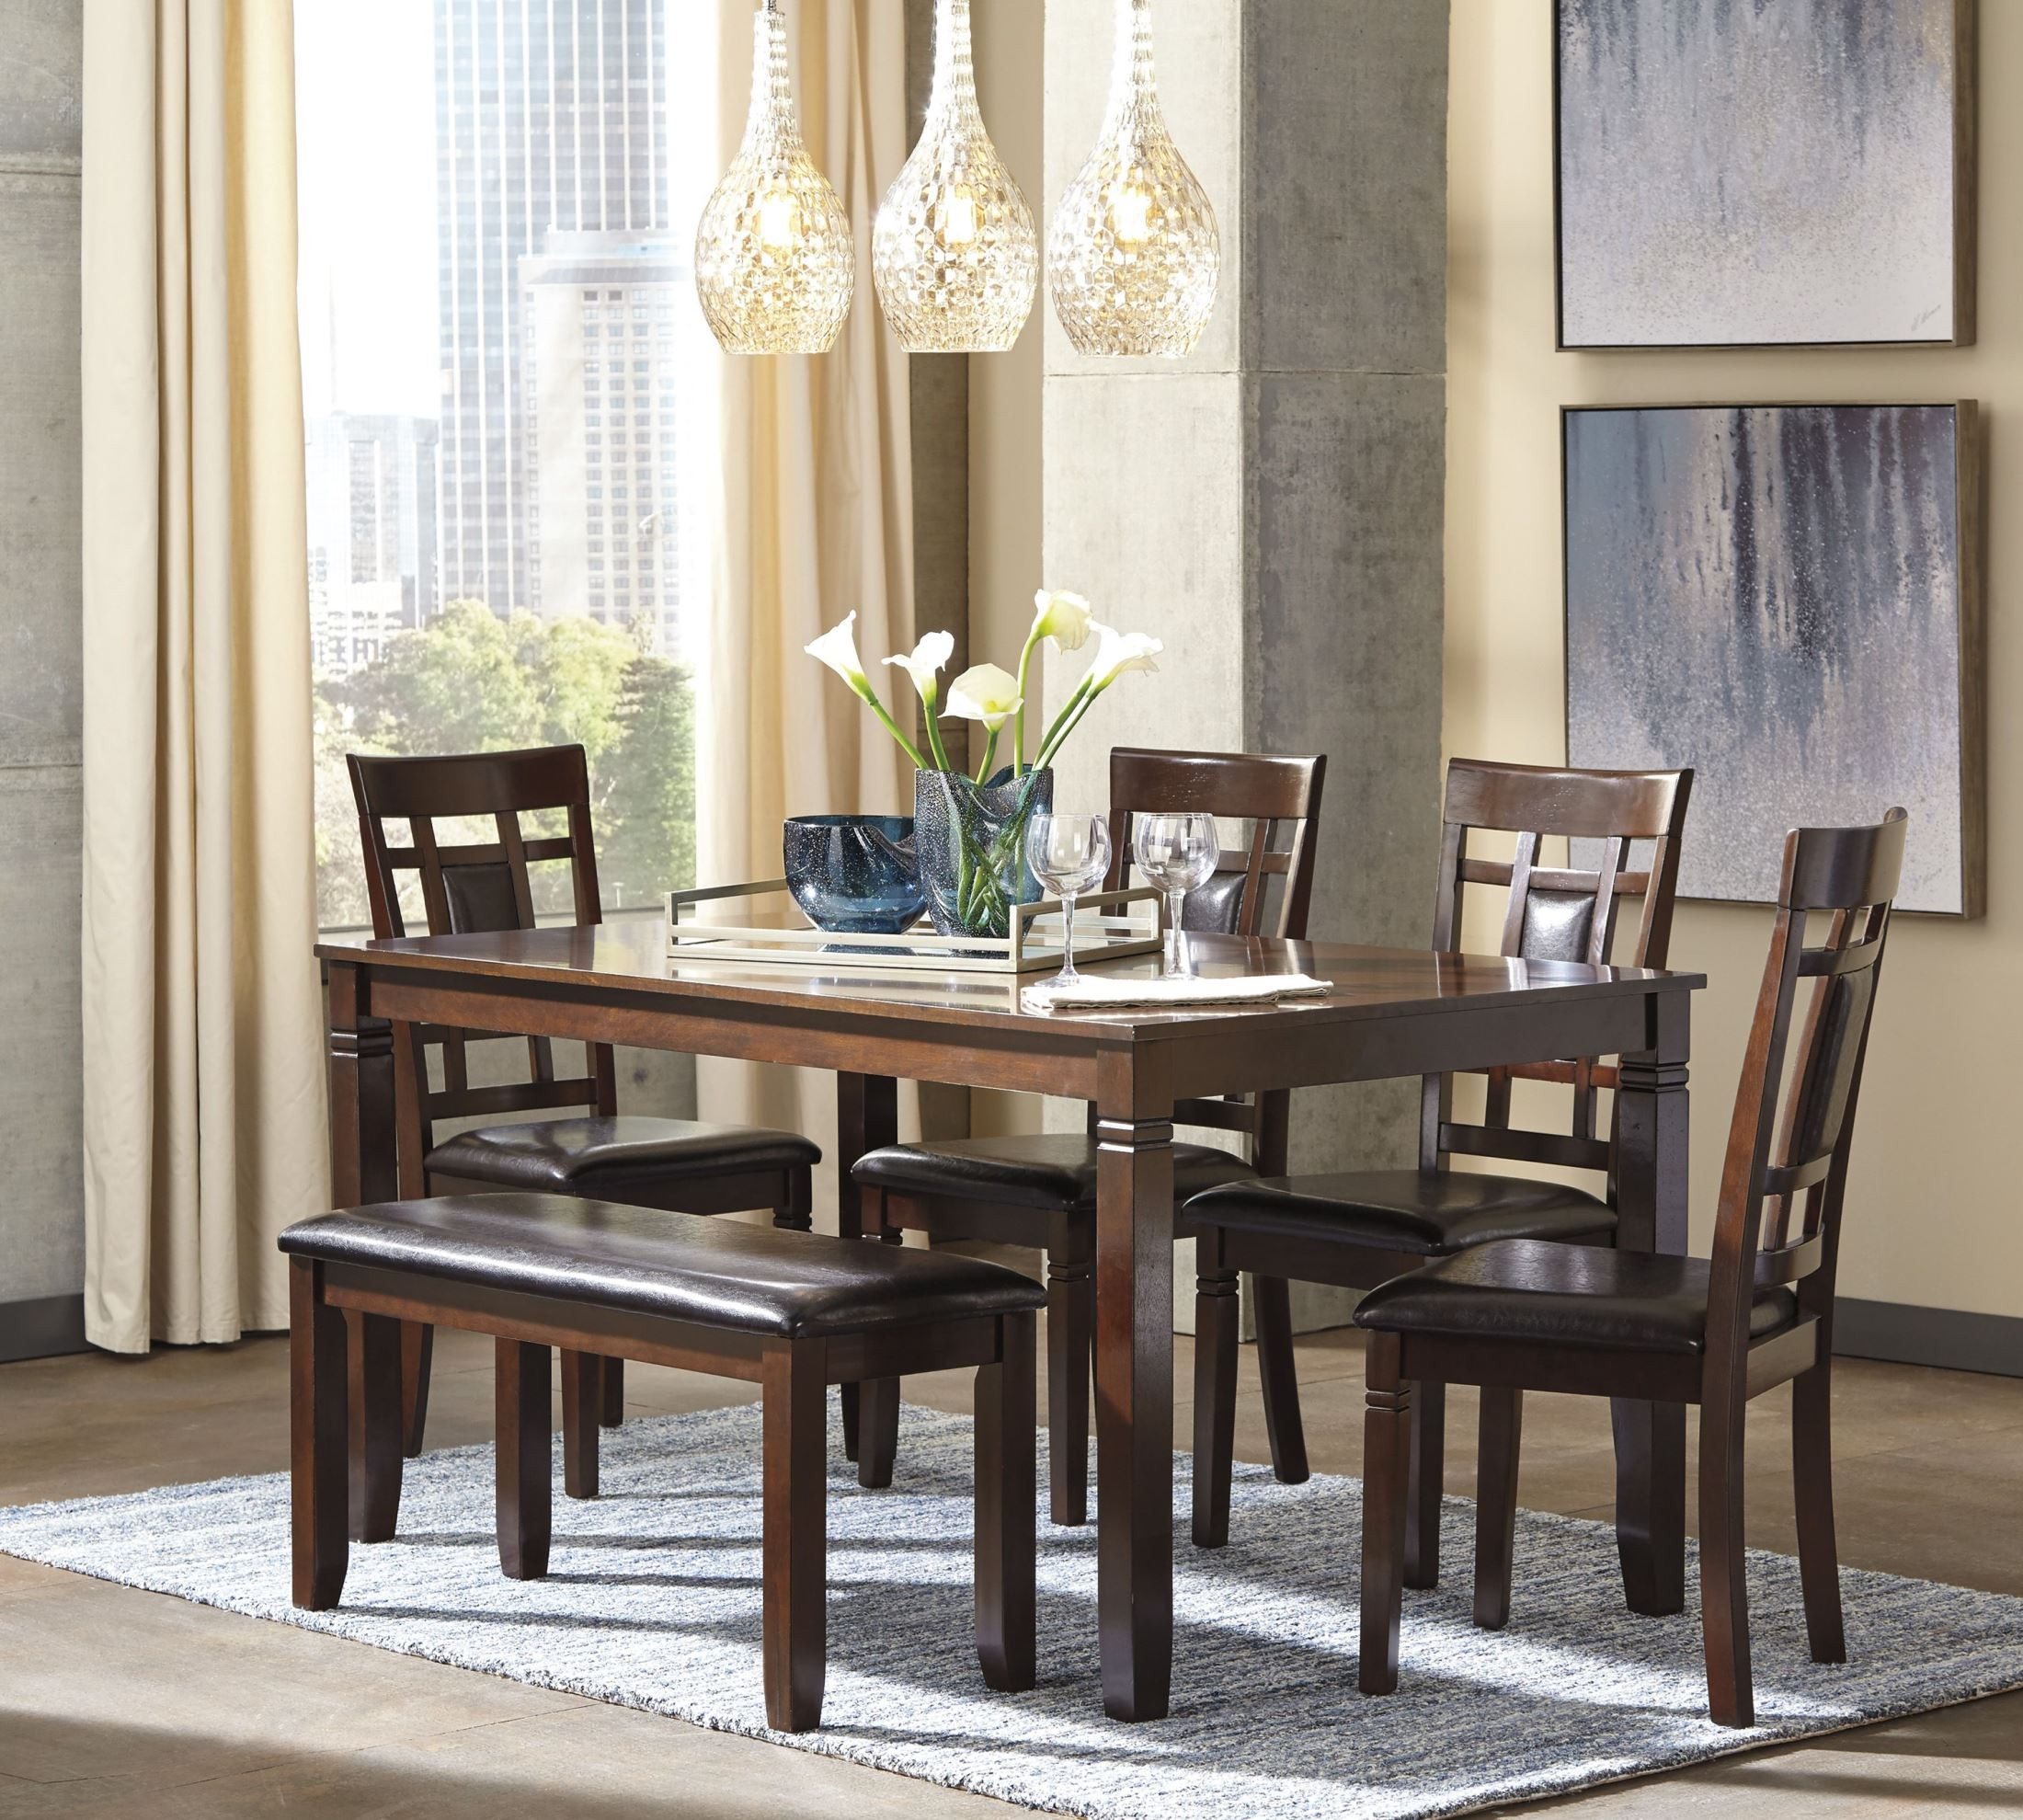 Bennox brown 6 piece rectangular dining room set d384 325 for Dining room sets for 6